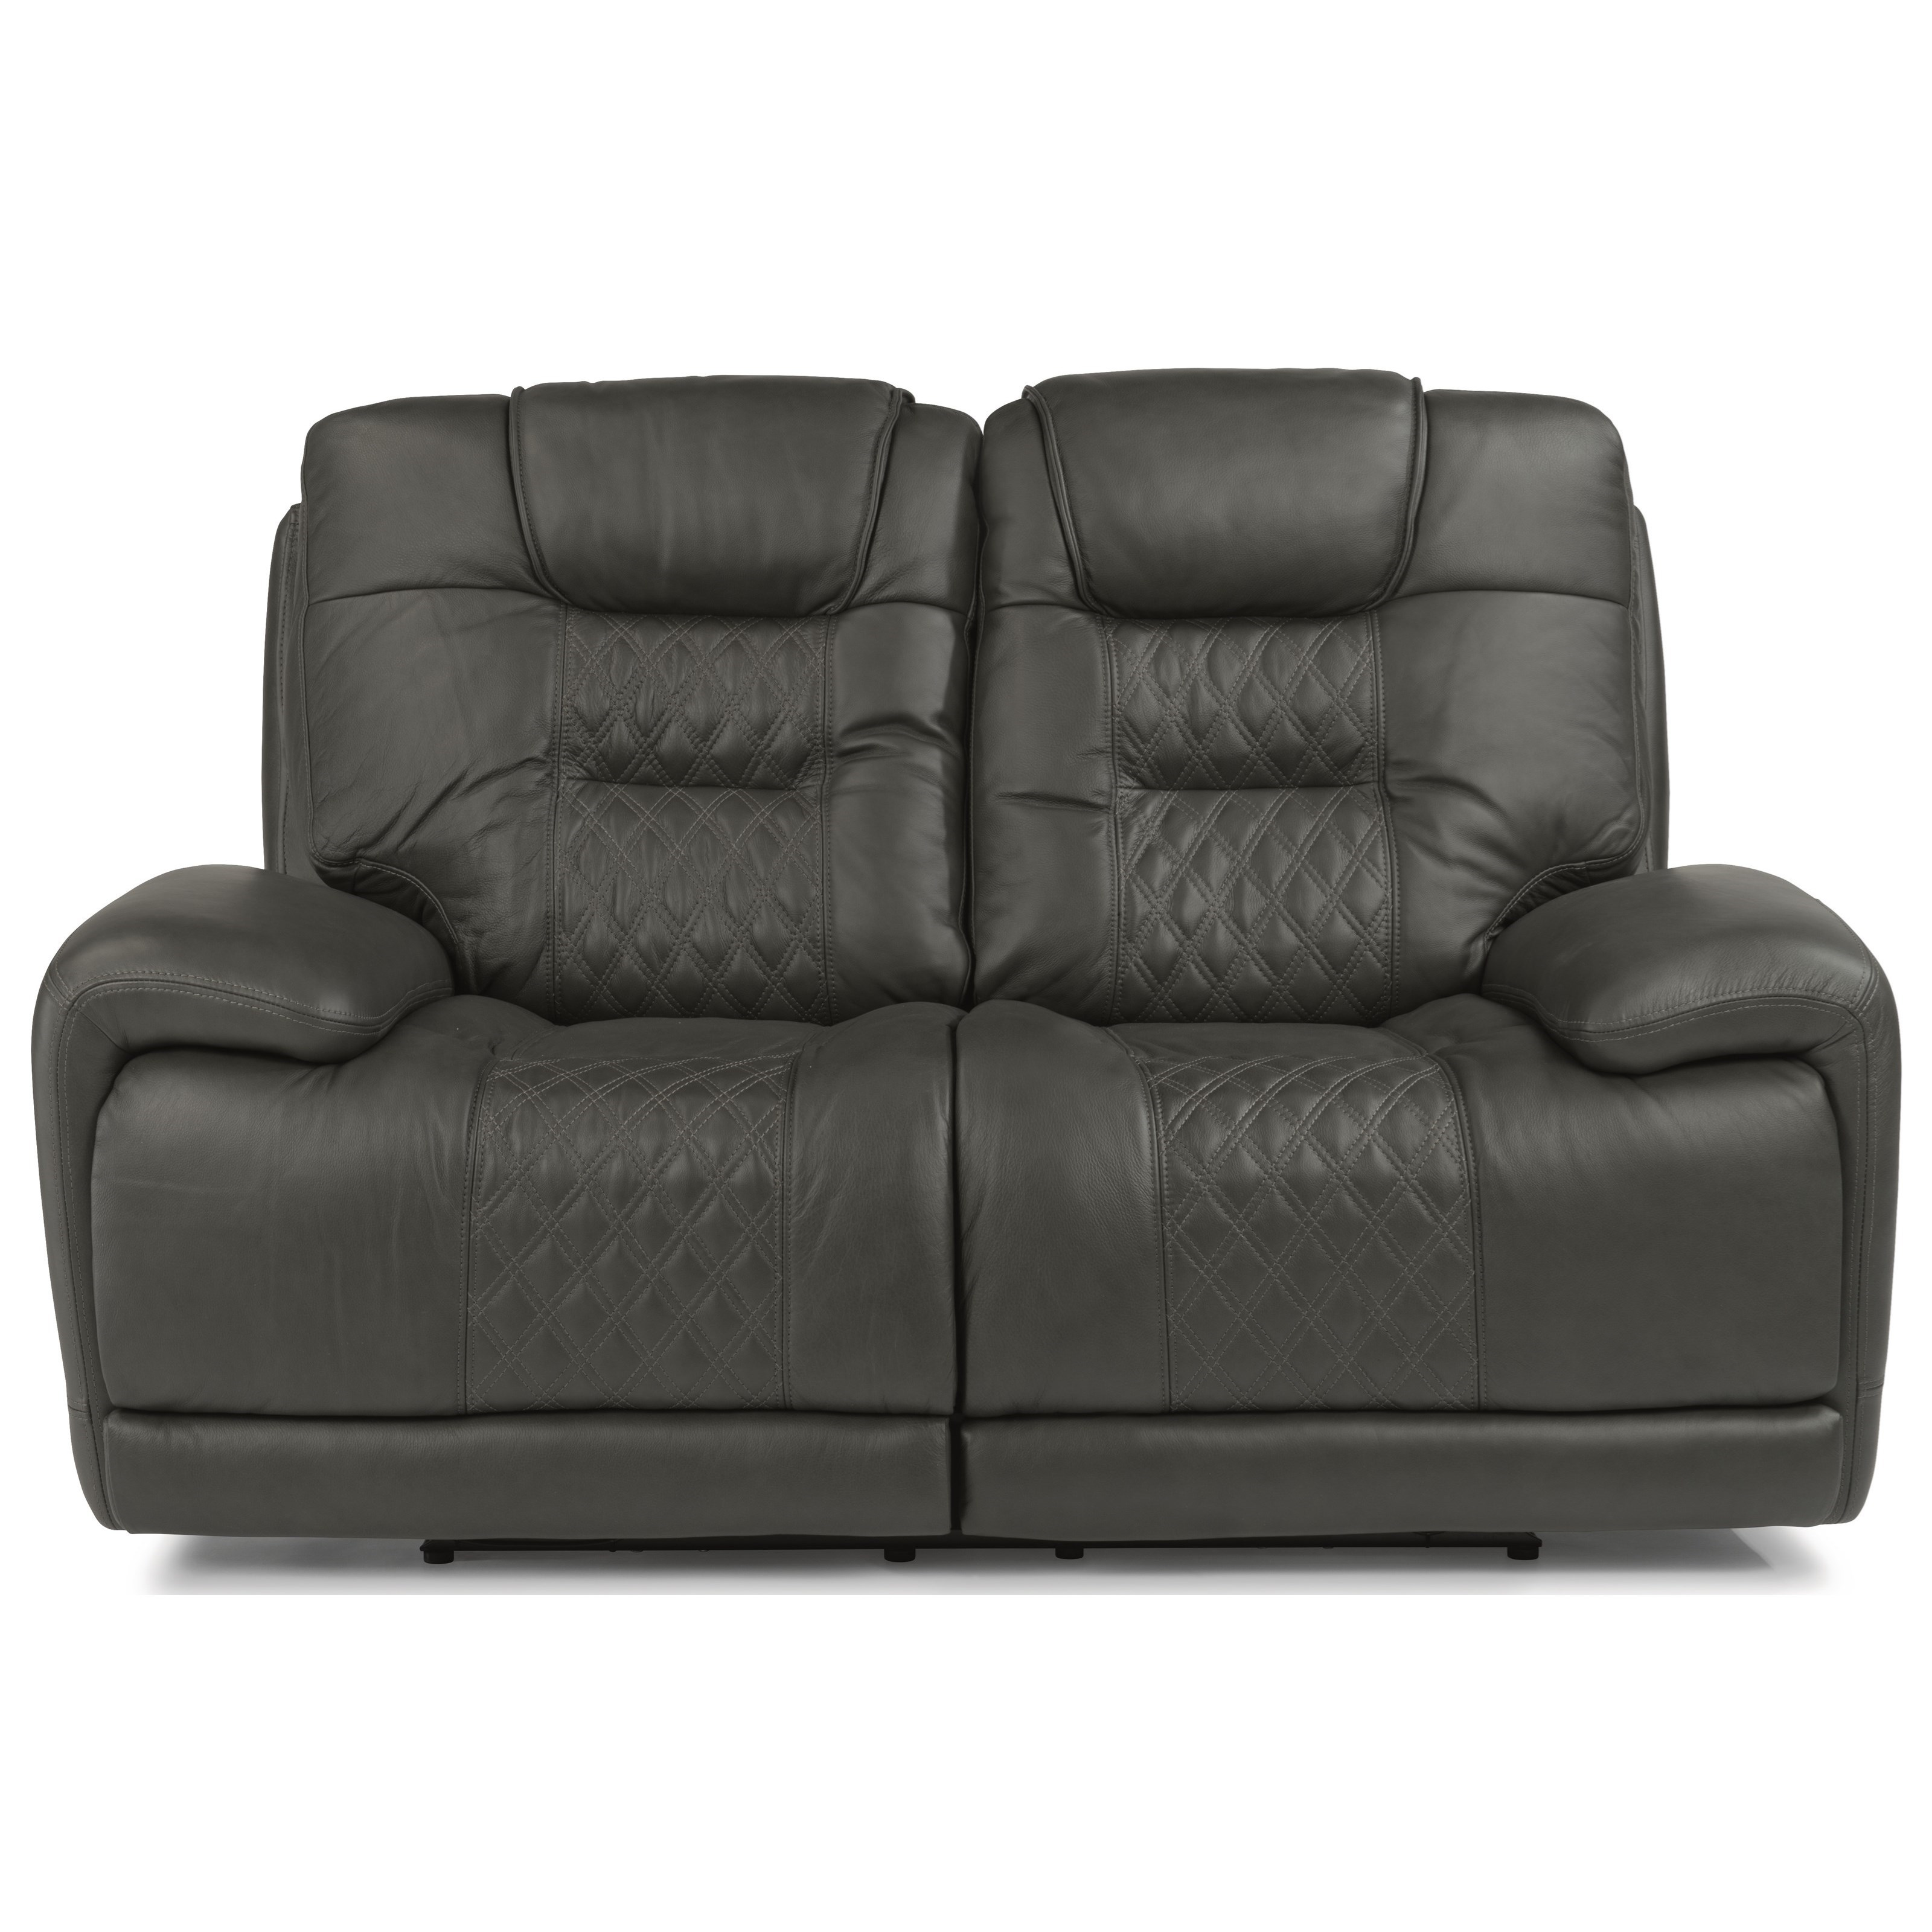 Latitudes - Royce Power Reclining Loveseat with Power Headrest by Flexsteel at Walker's Furniture